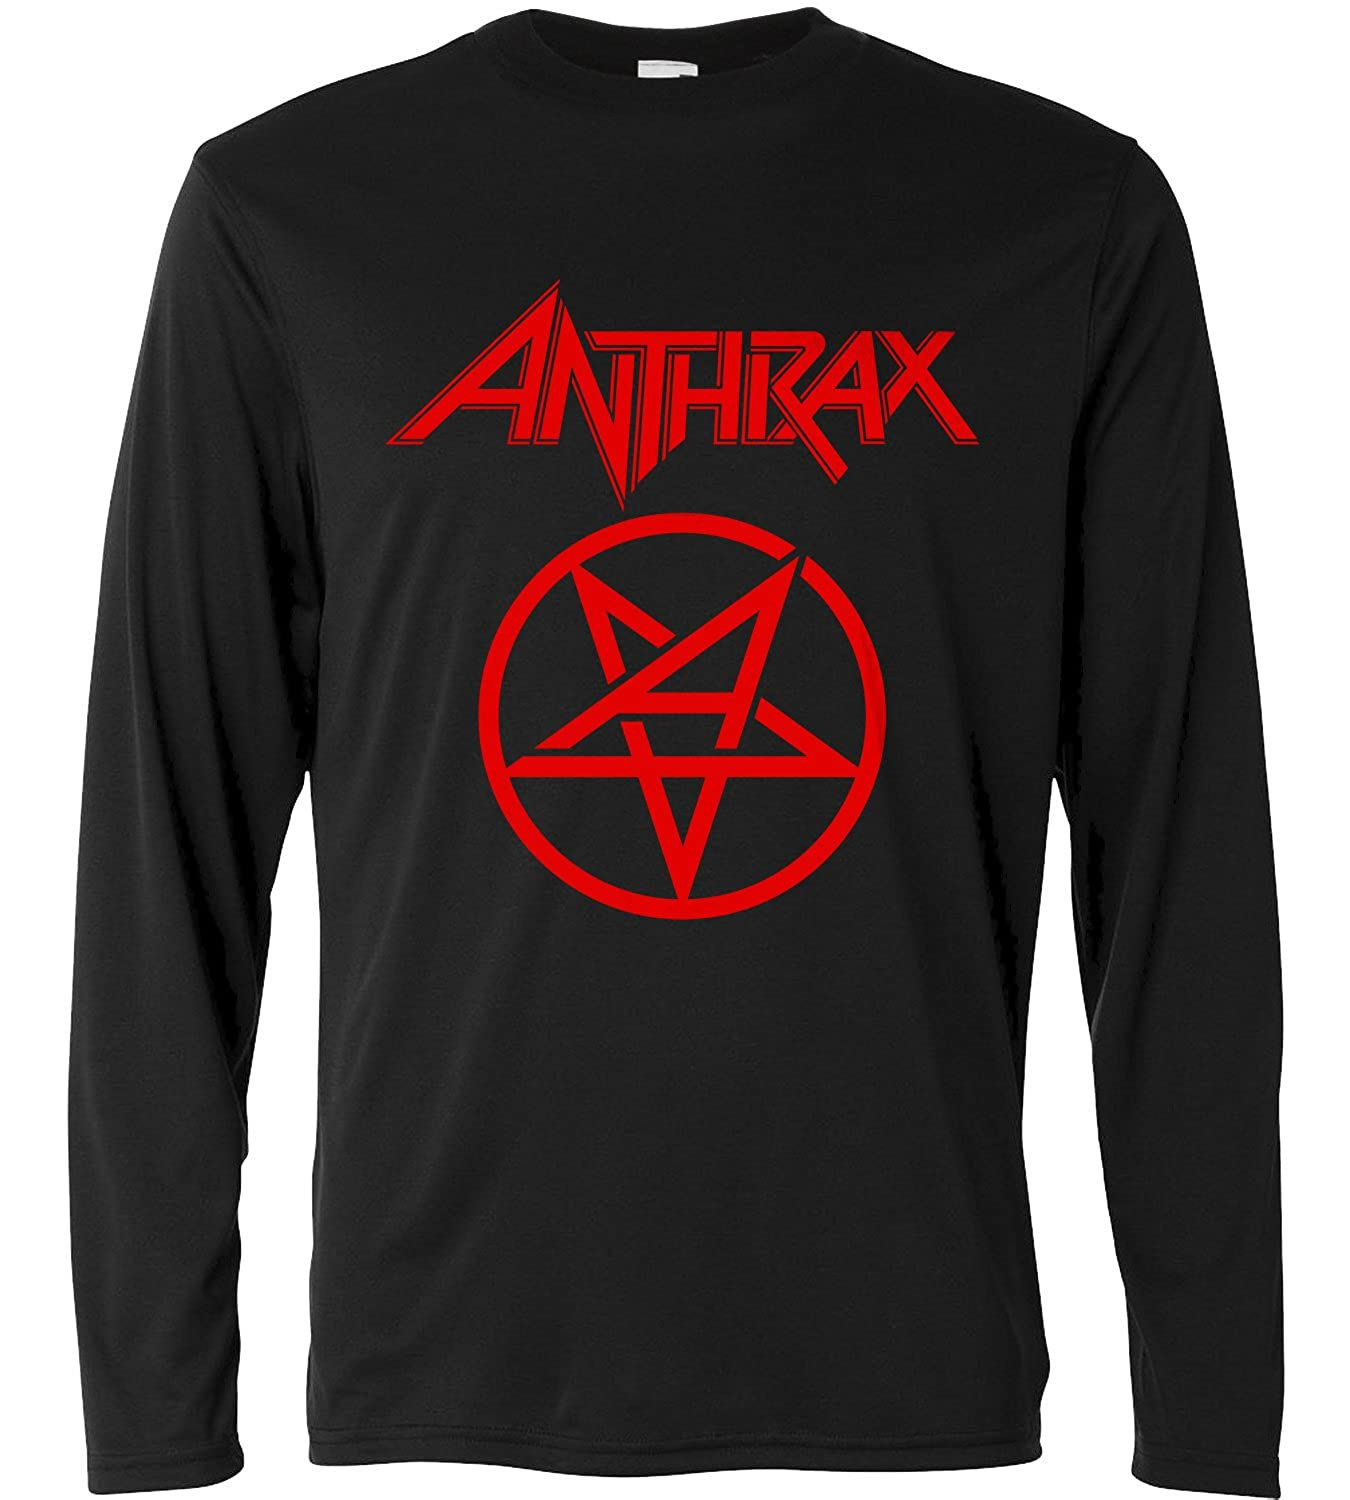 LaMAGLIERIA Camiseta de Manga Larga Hombre Long Sleeve Metal Rock 100/% algod/òn Anthrax New Red Print